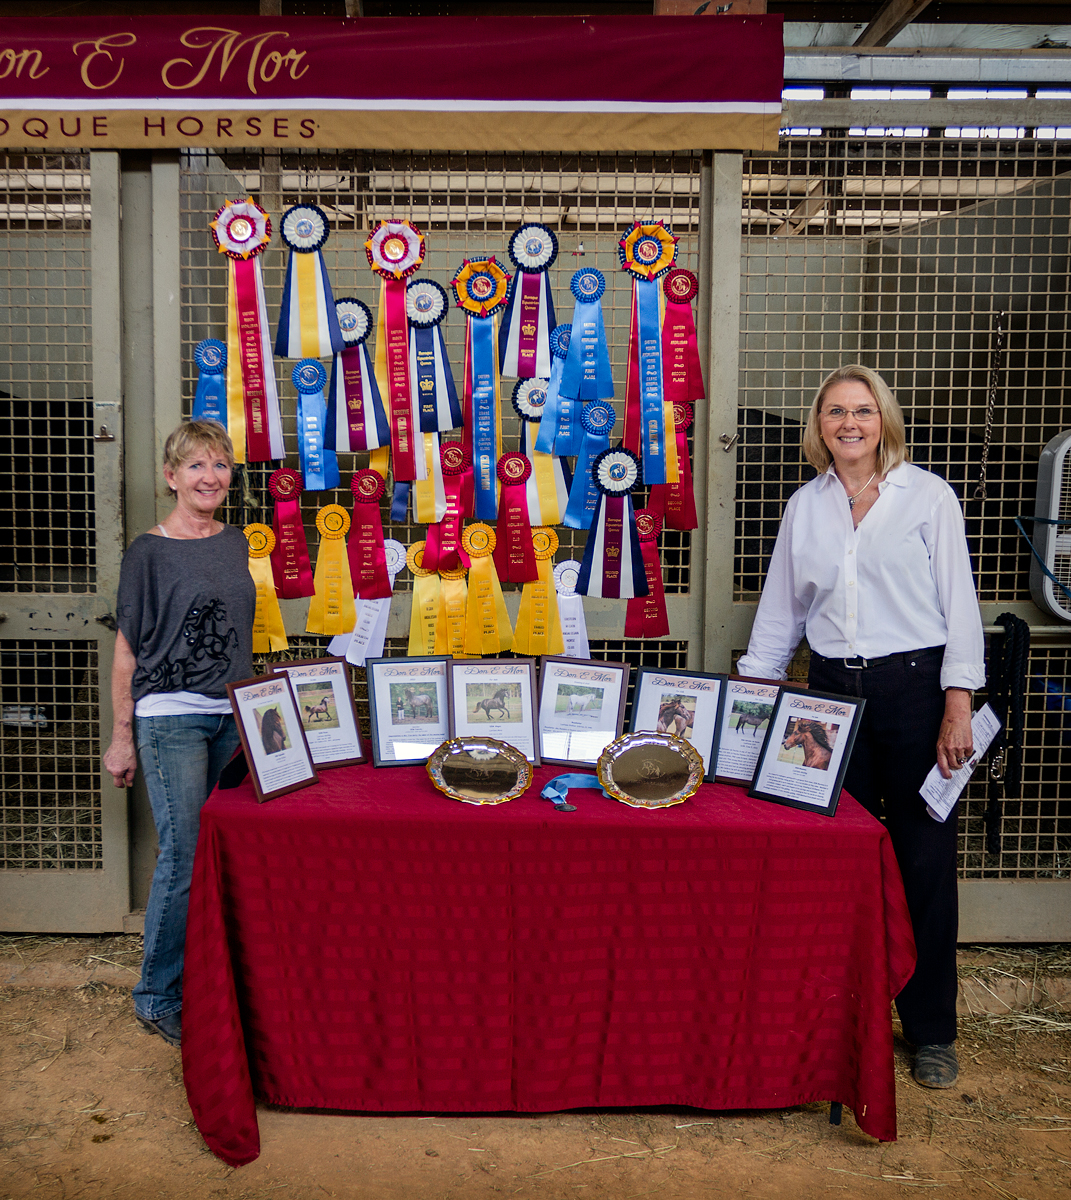 Awards for Don E Mor horses at ERAHC Virginia Classic 2013